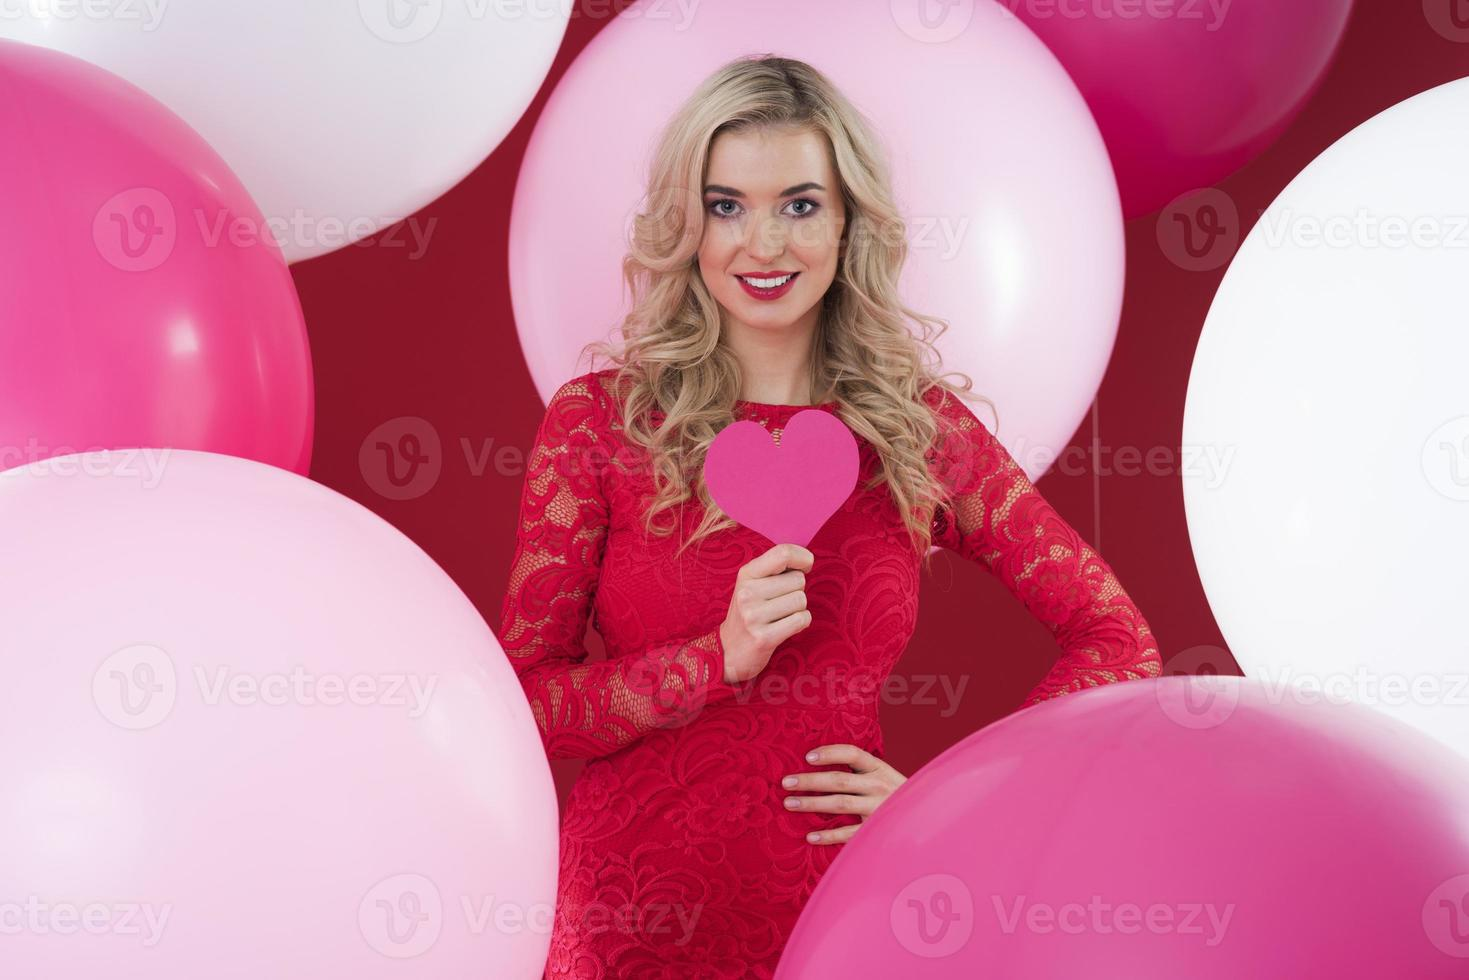 Attractive woman and abundance of balloons photo